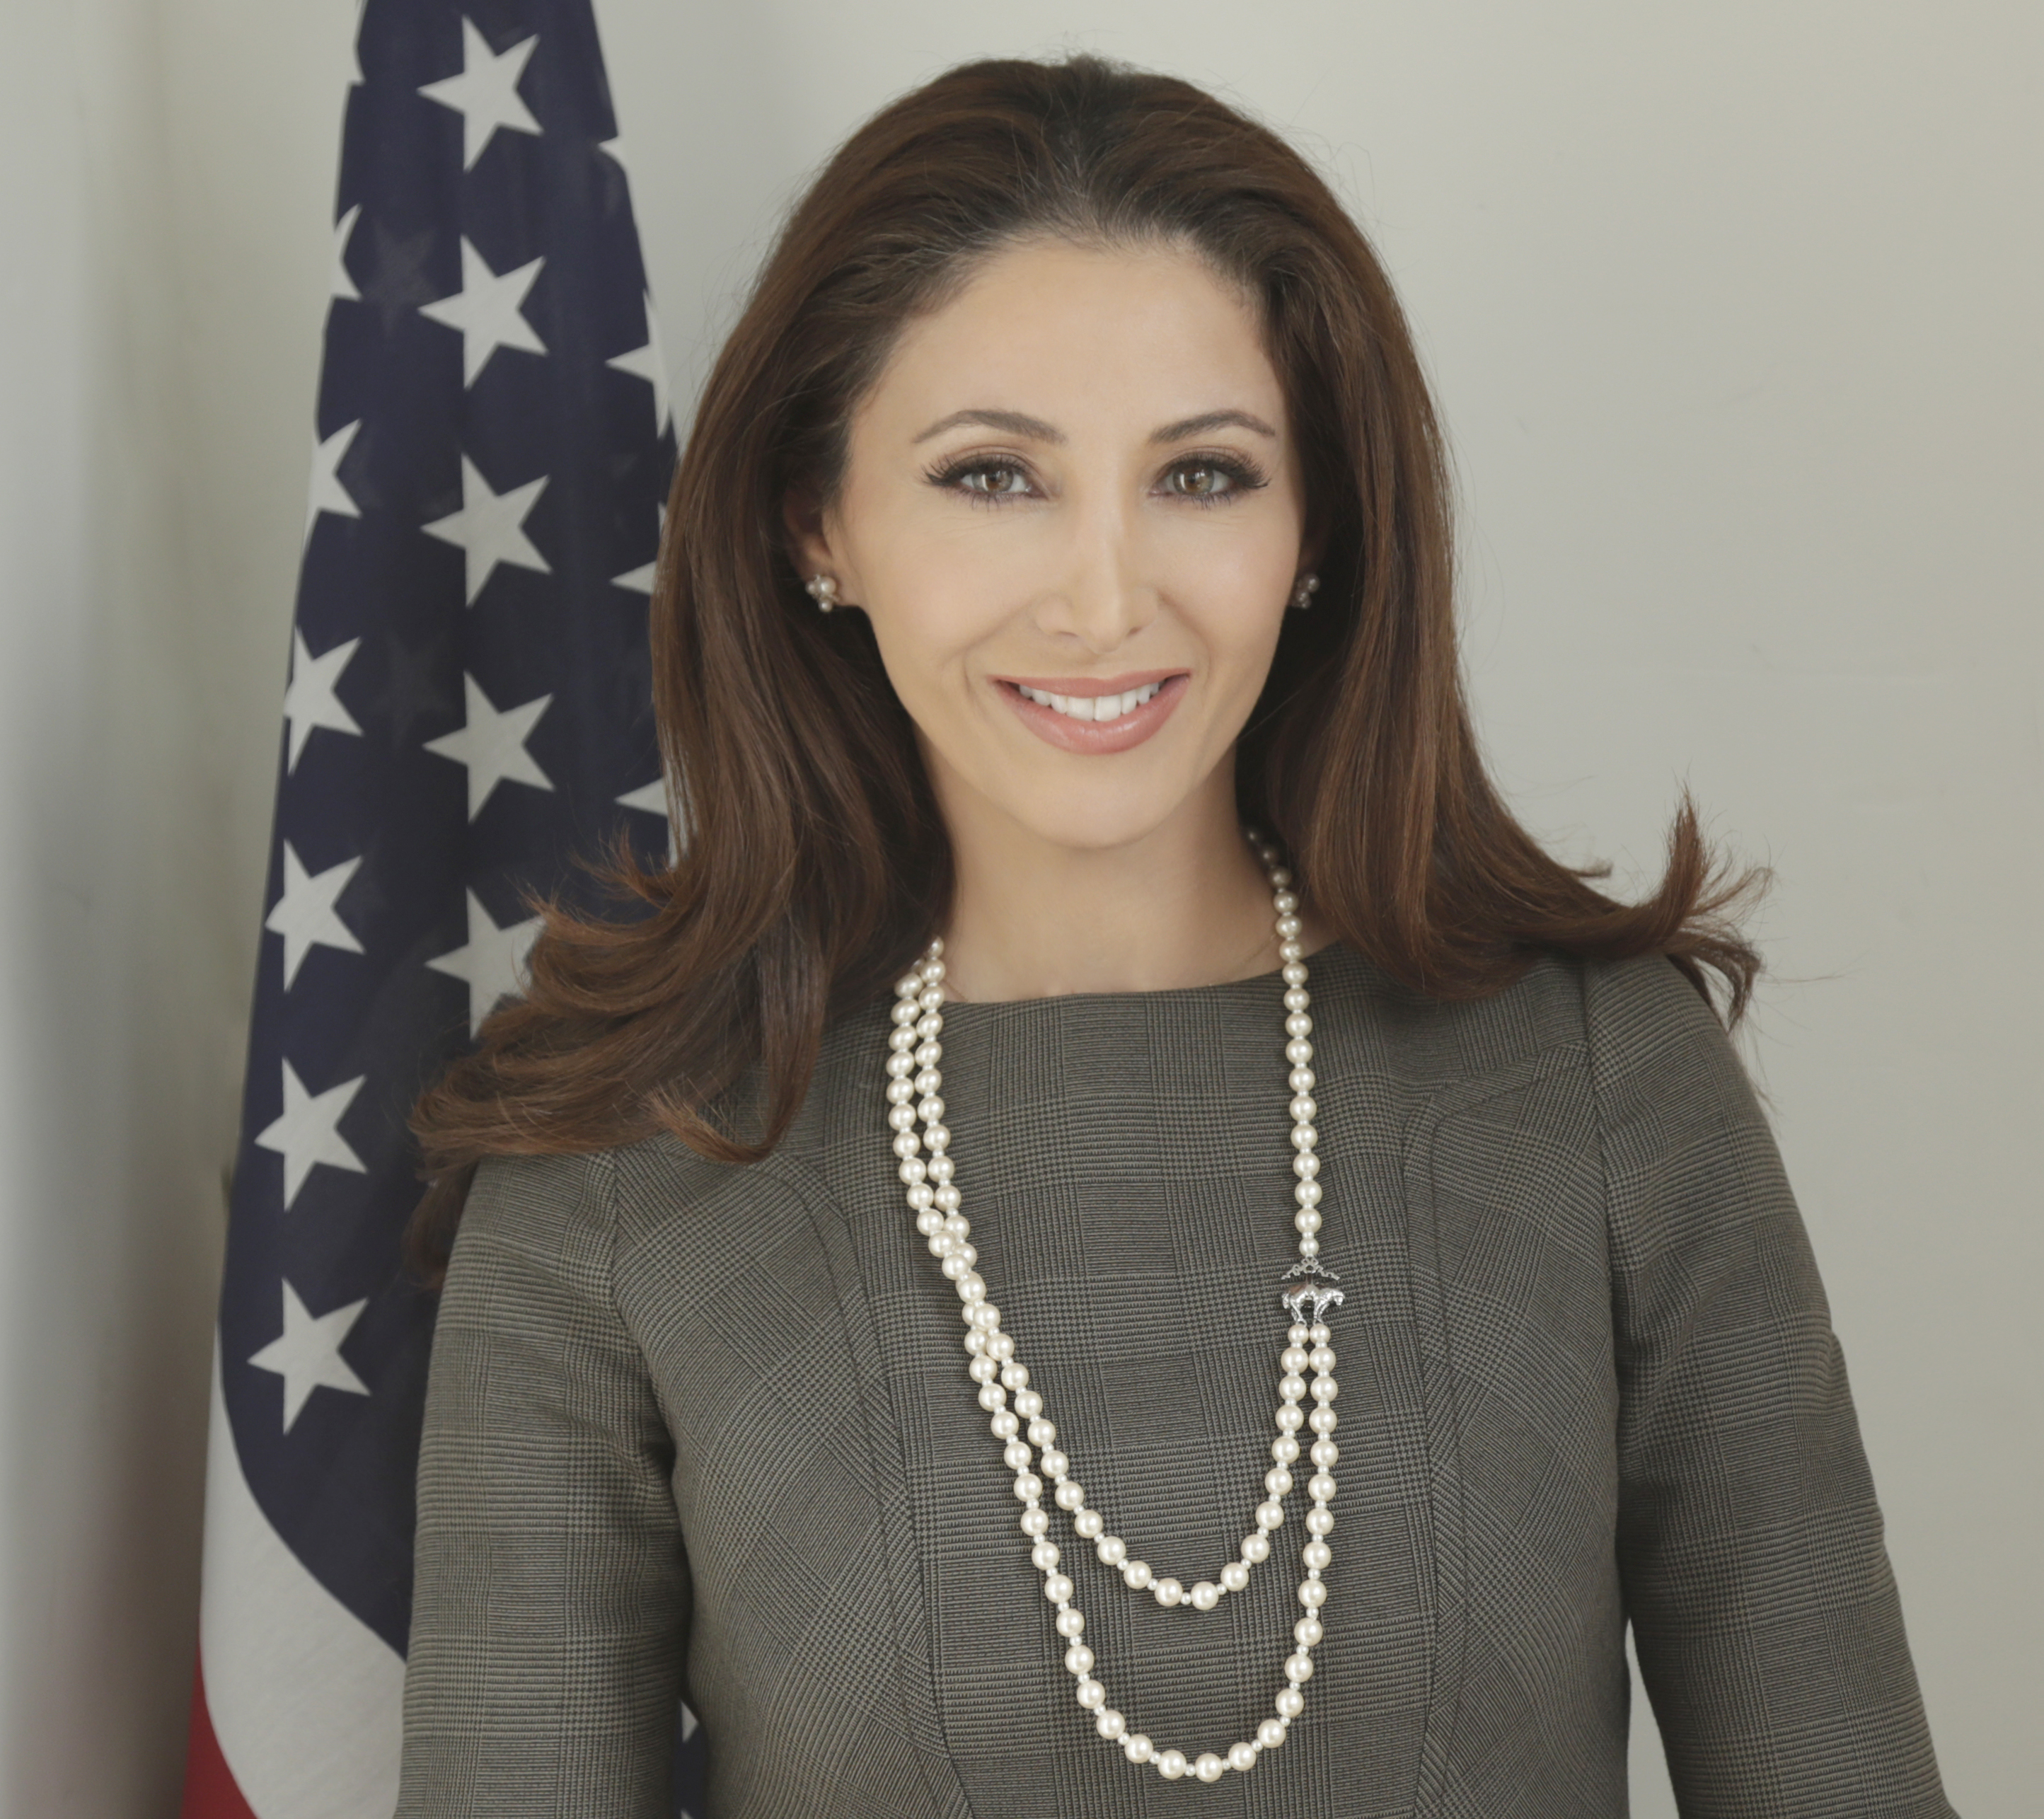 Defining 'Resilience': A Conversation with Dr. Julia Nesheiwat, former Homeland Security Advisor